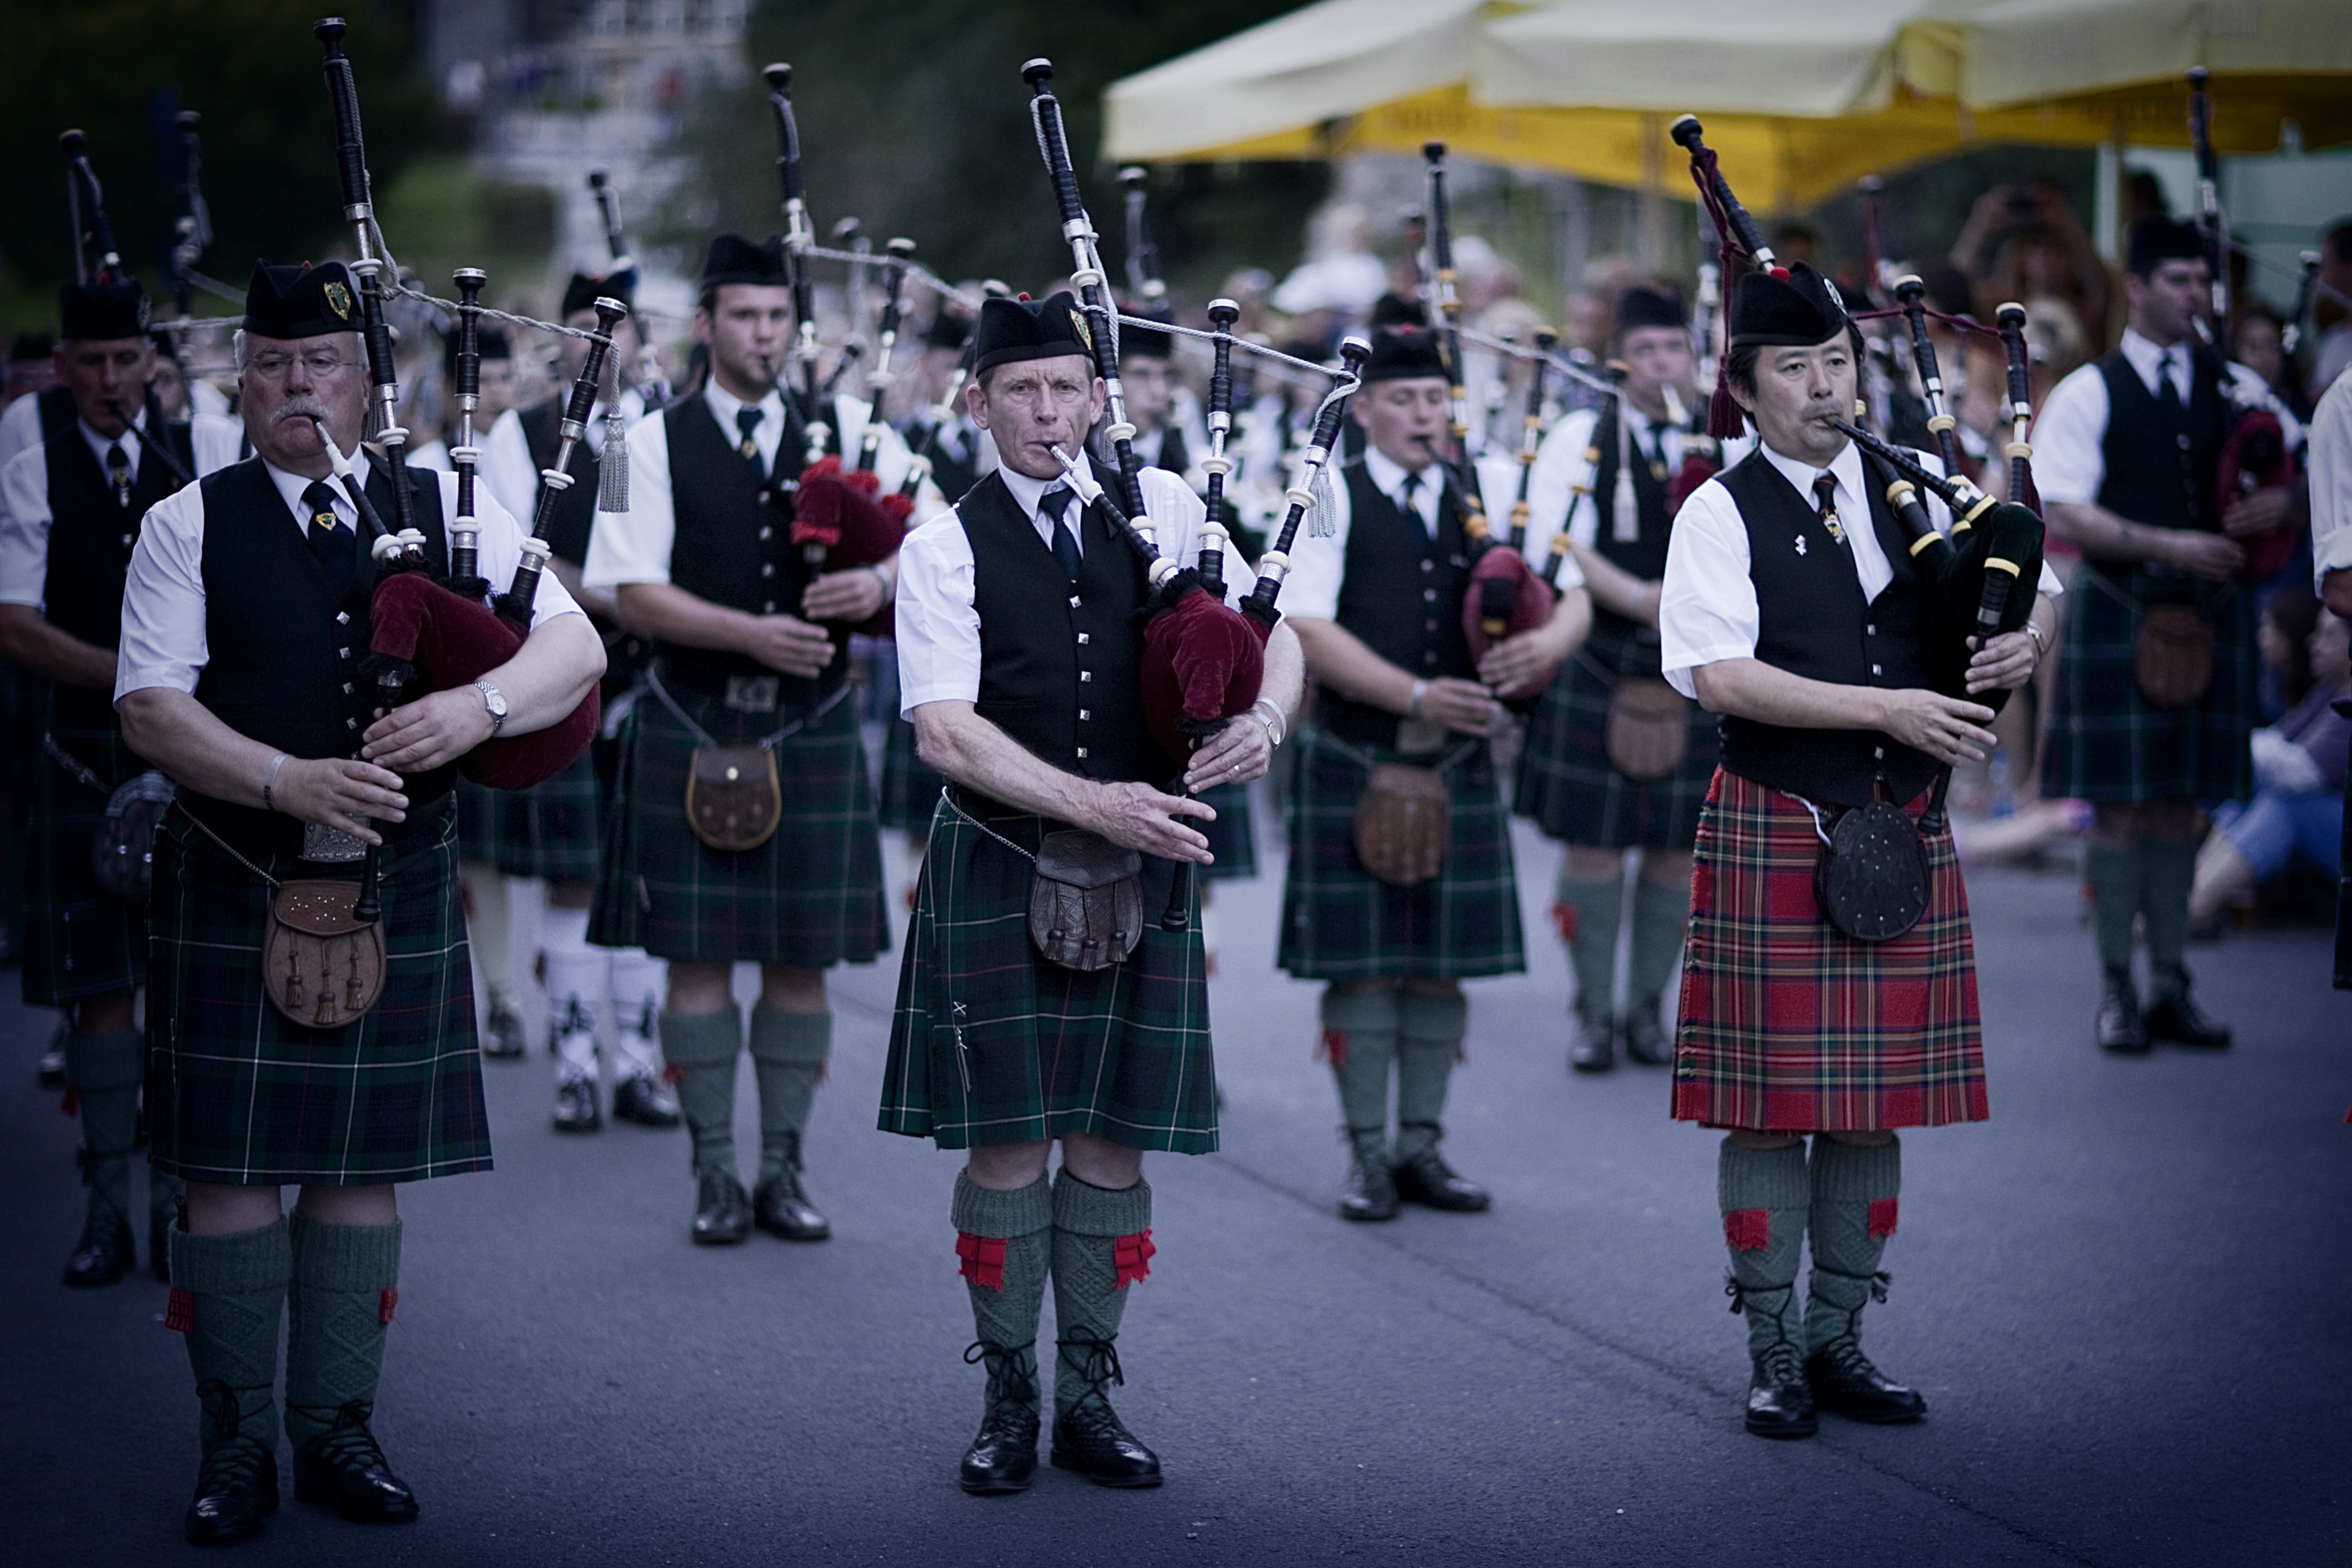 23nd International Bagpipe Festival